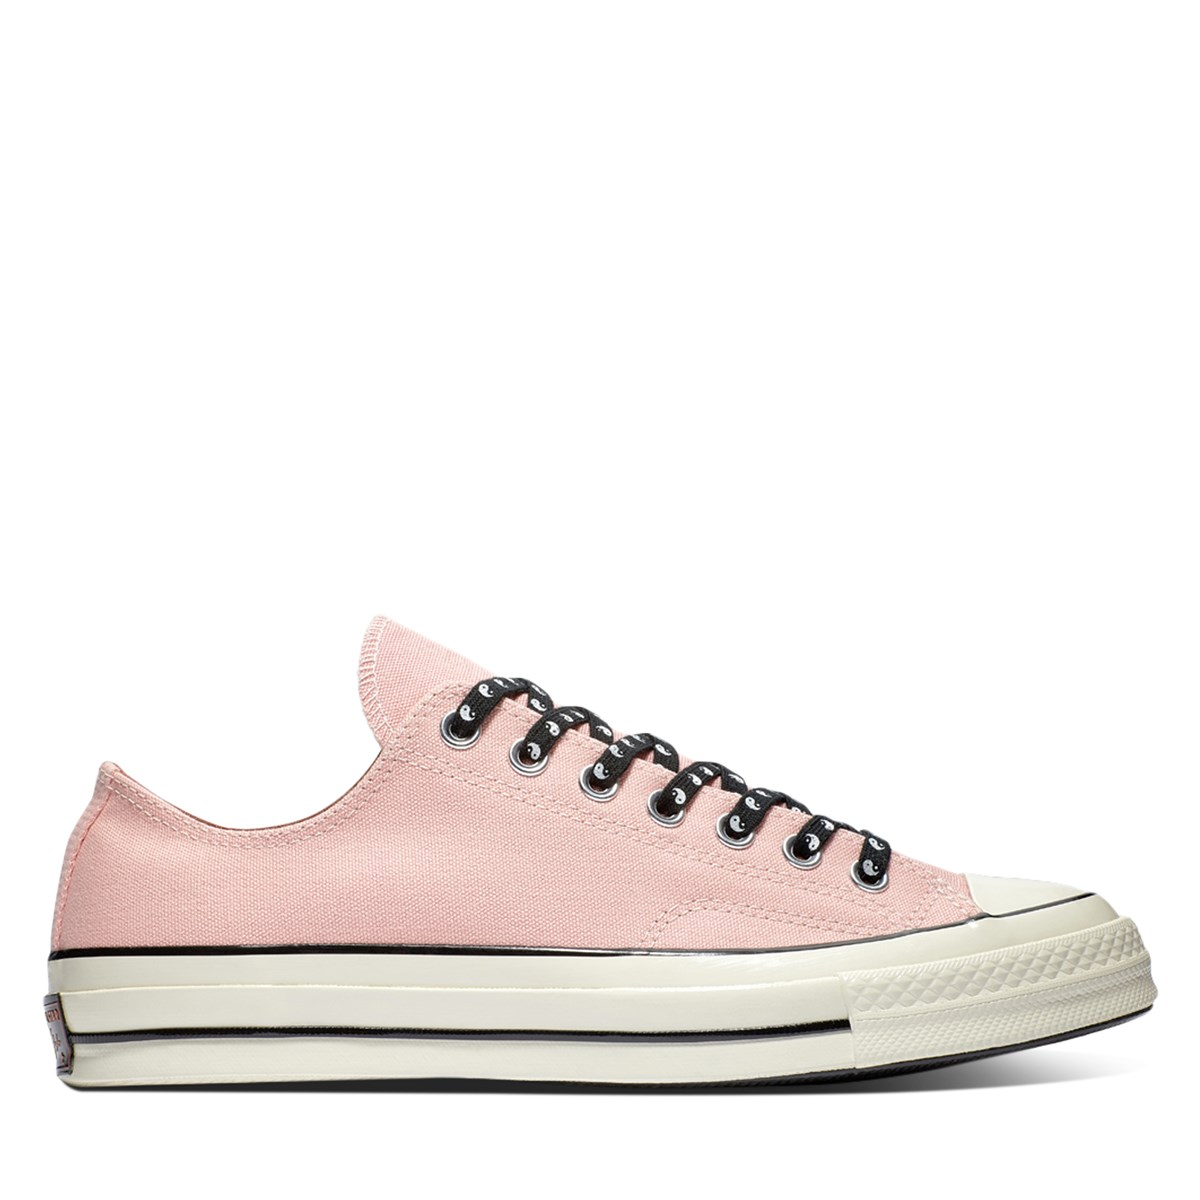 Women's Chuck 70 OX Sneaker in Coral